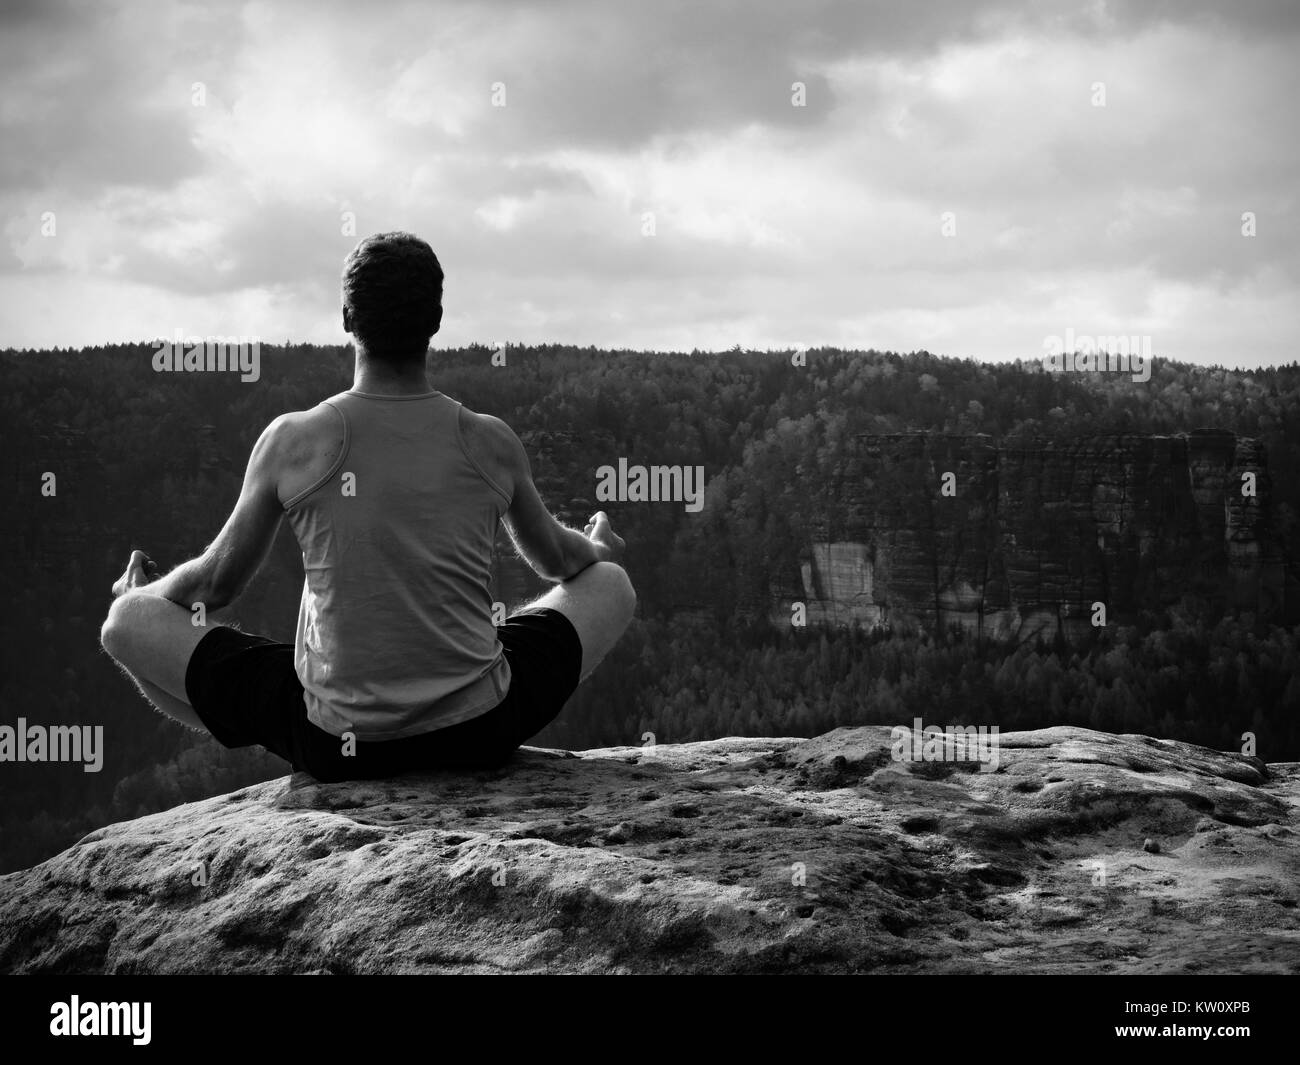 Man meditating in Lotus Pose on rocky cliff. Sportsman practicing Yoga on stone edge above landscape - Stock Image